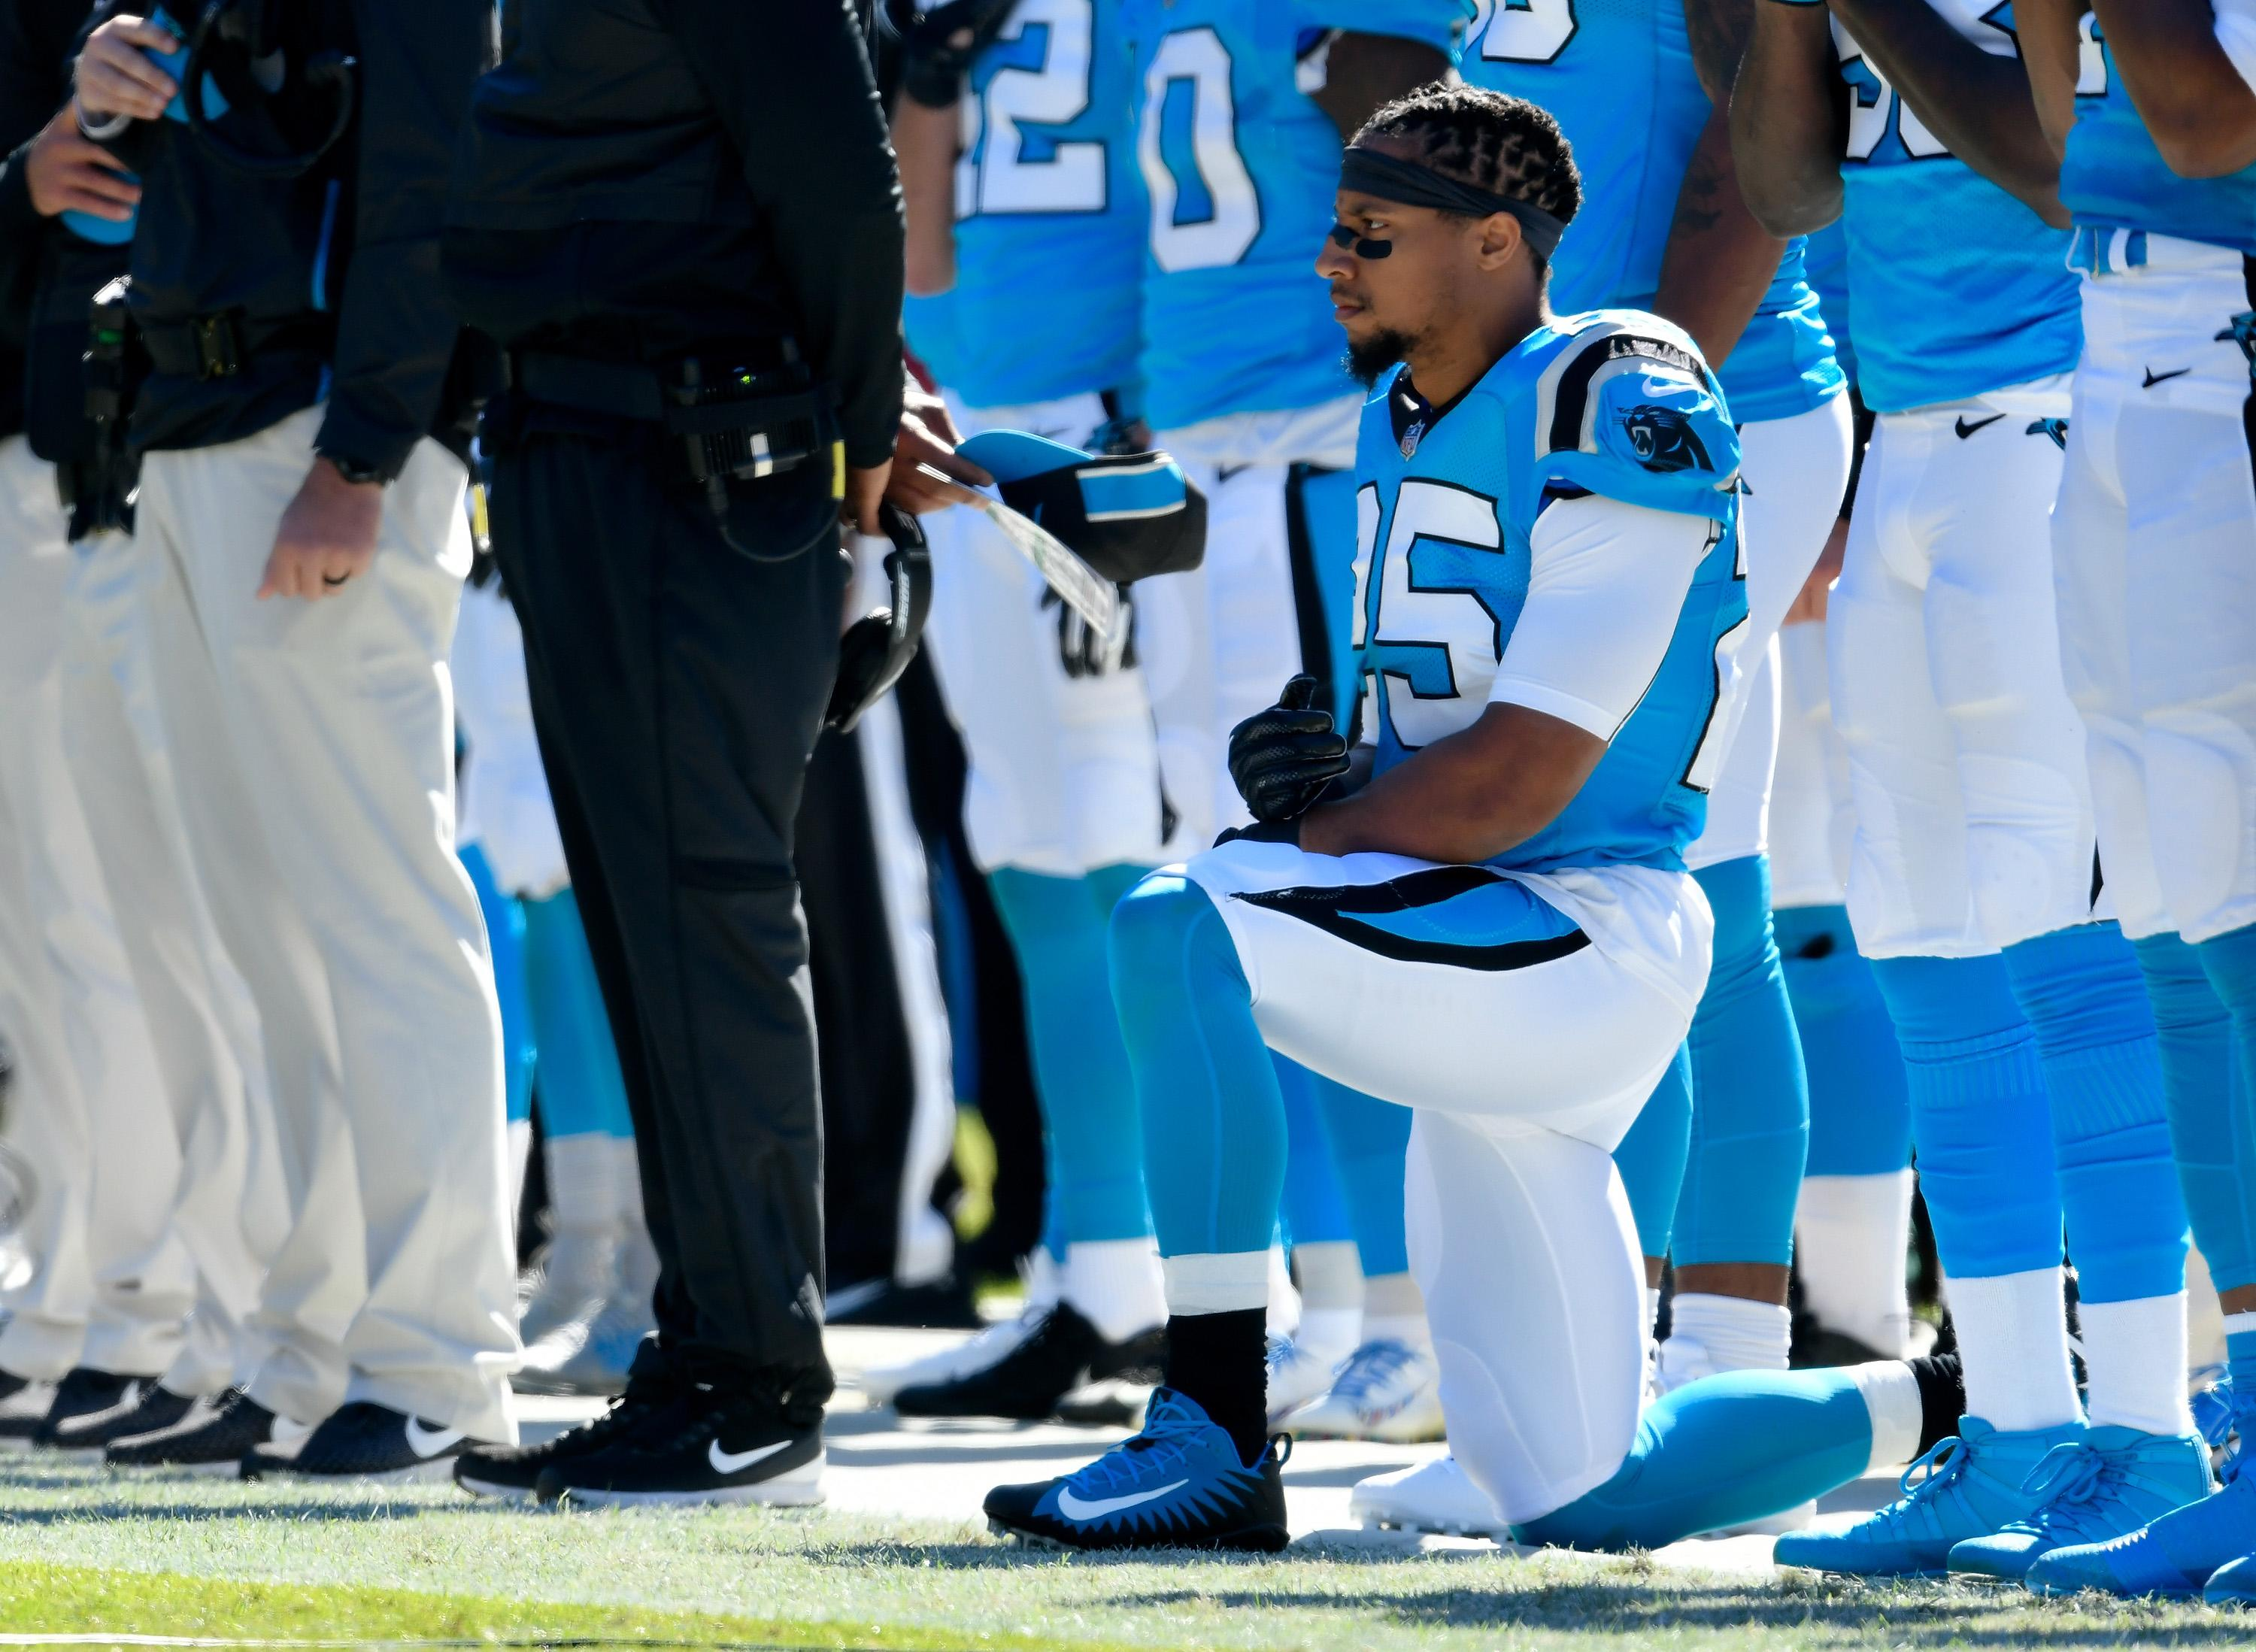 Eric Reid: New Panthers deal proves my point that NFL colluded